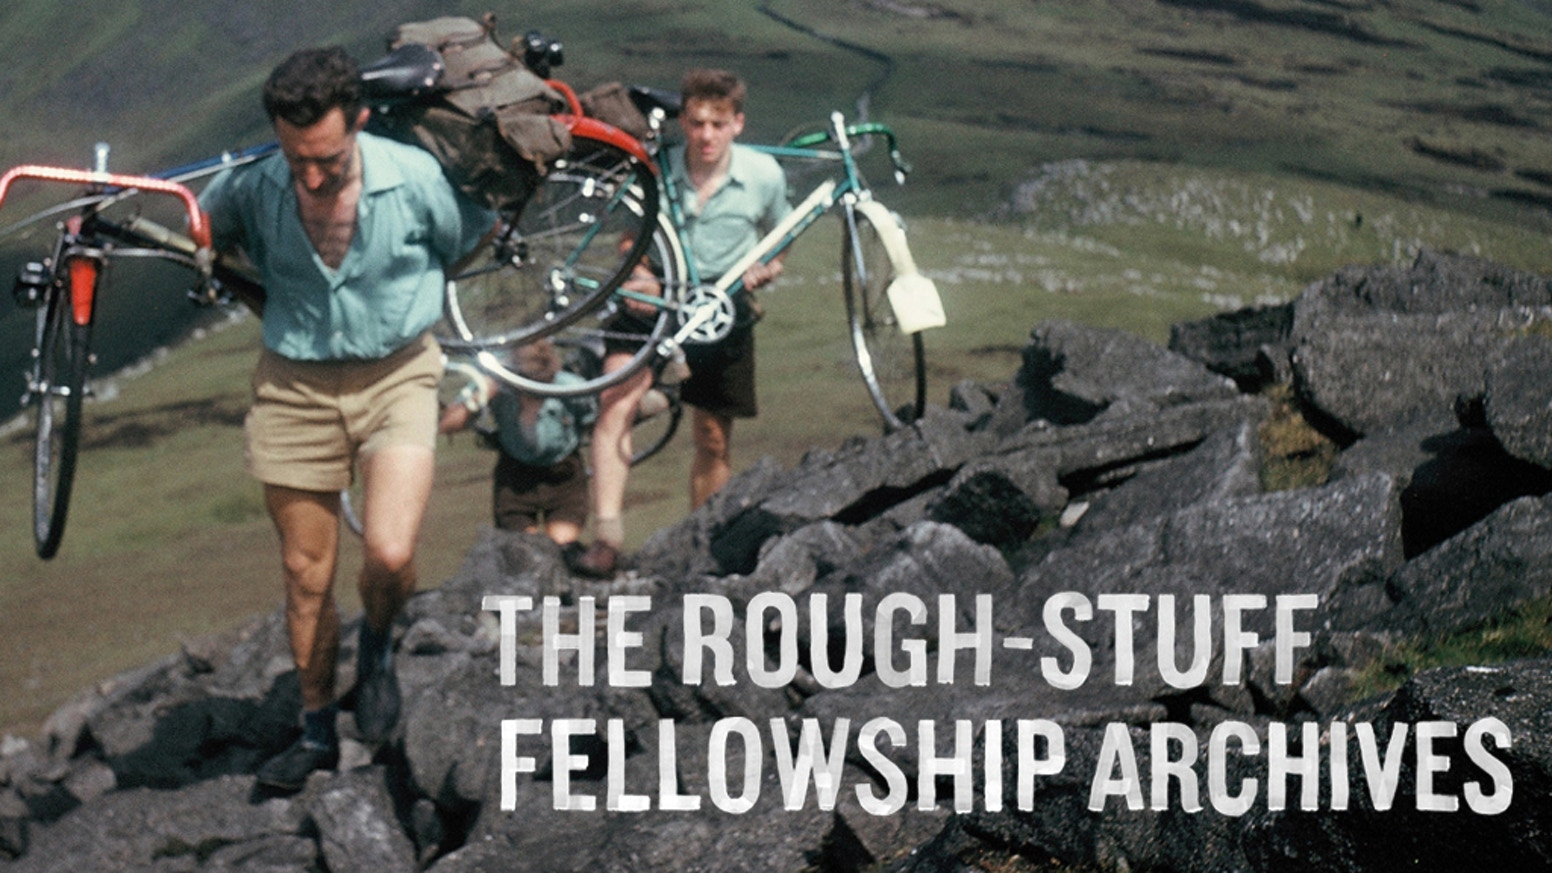 Adventures with the world's oldest off-road cycling club …… STILL AVAILABLE TO ……